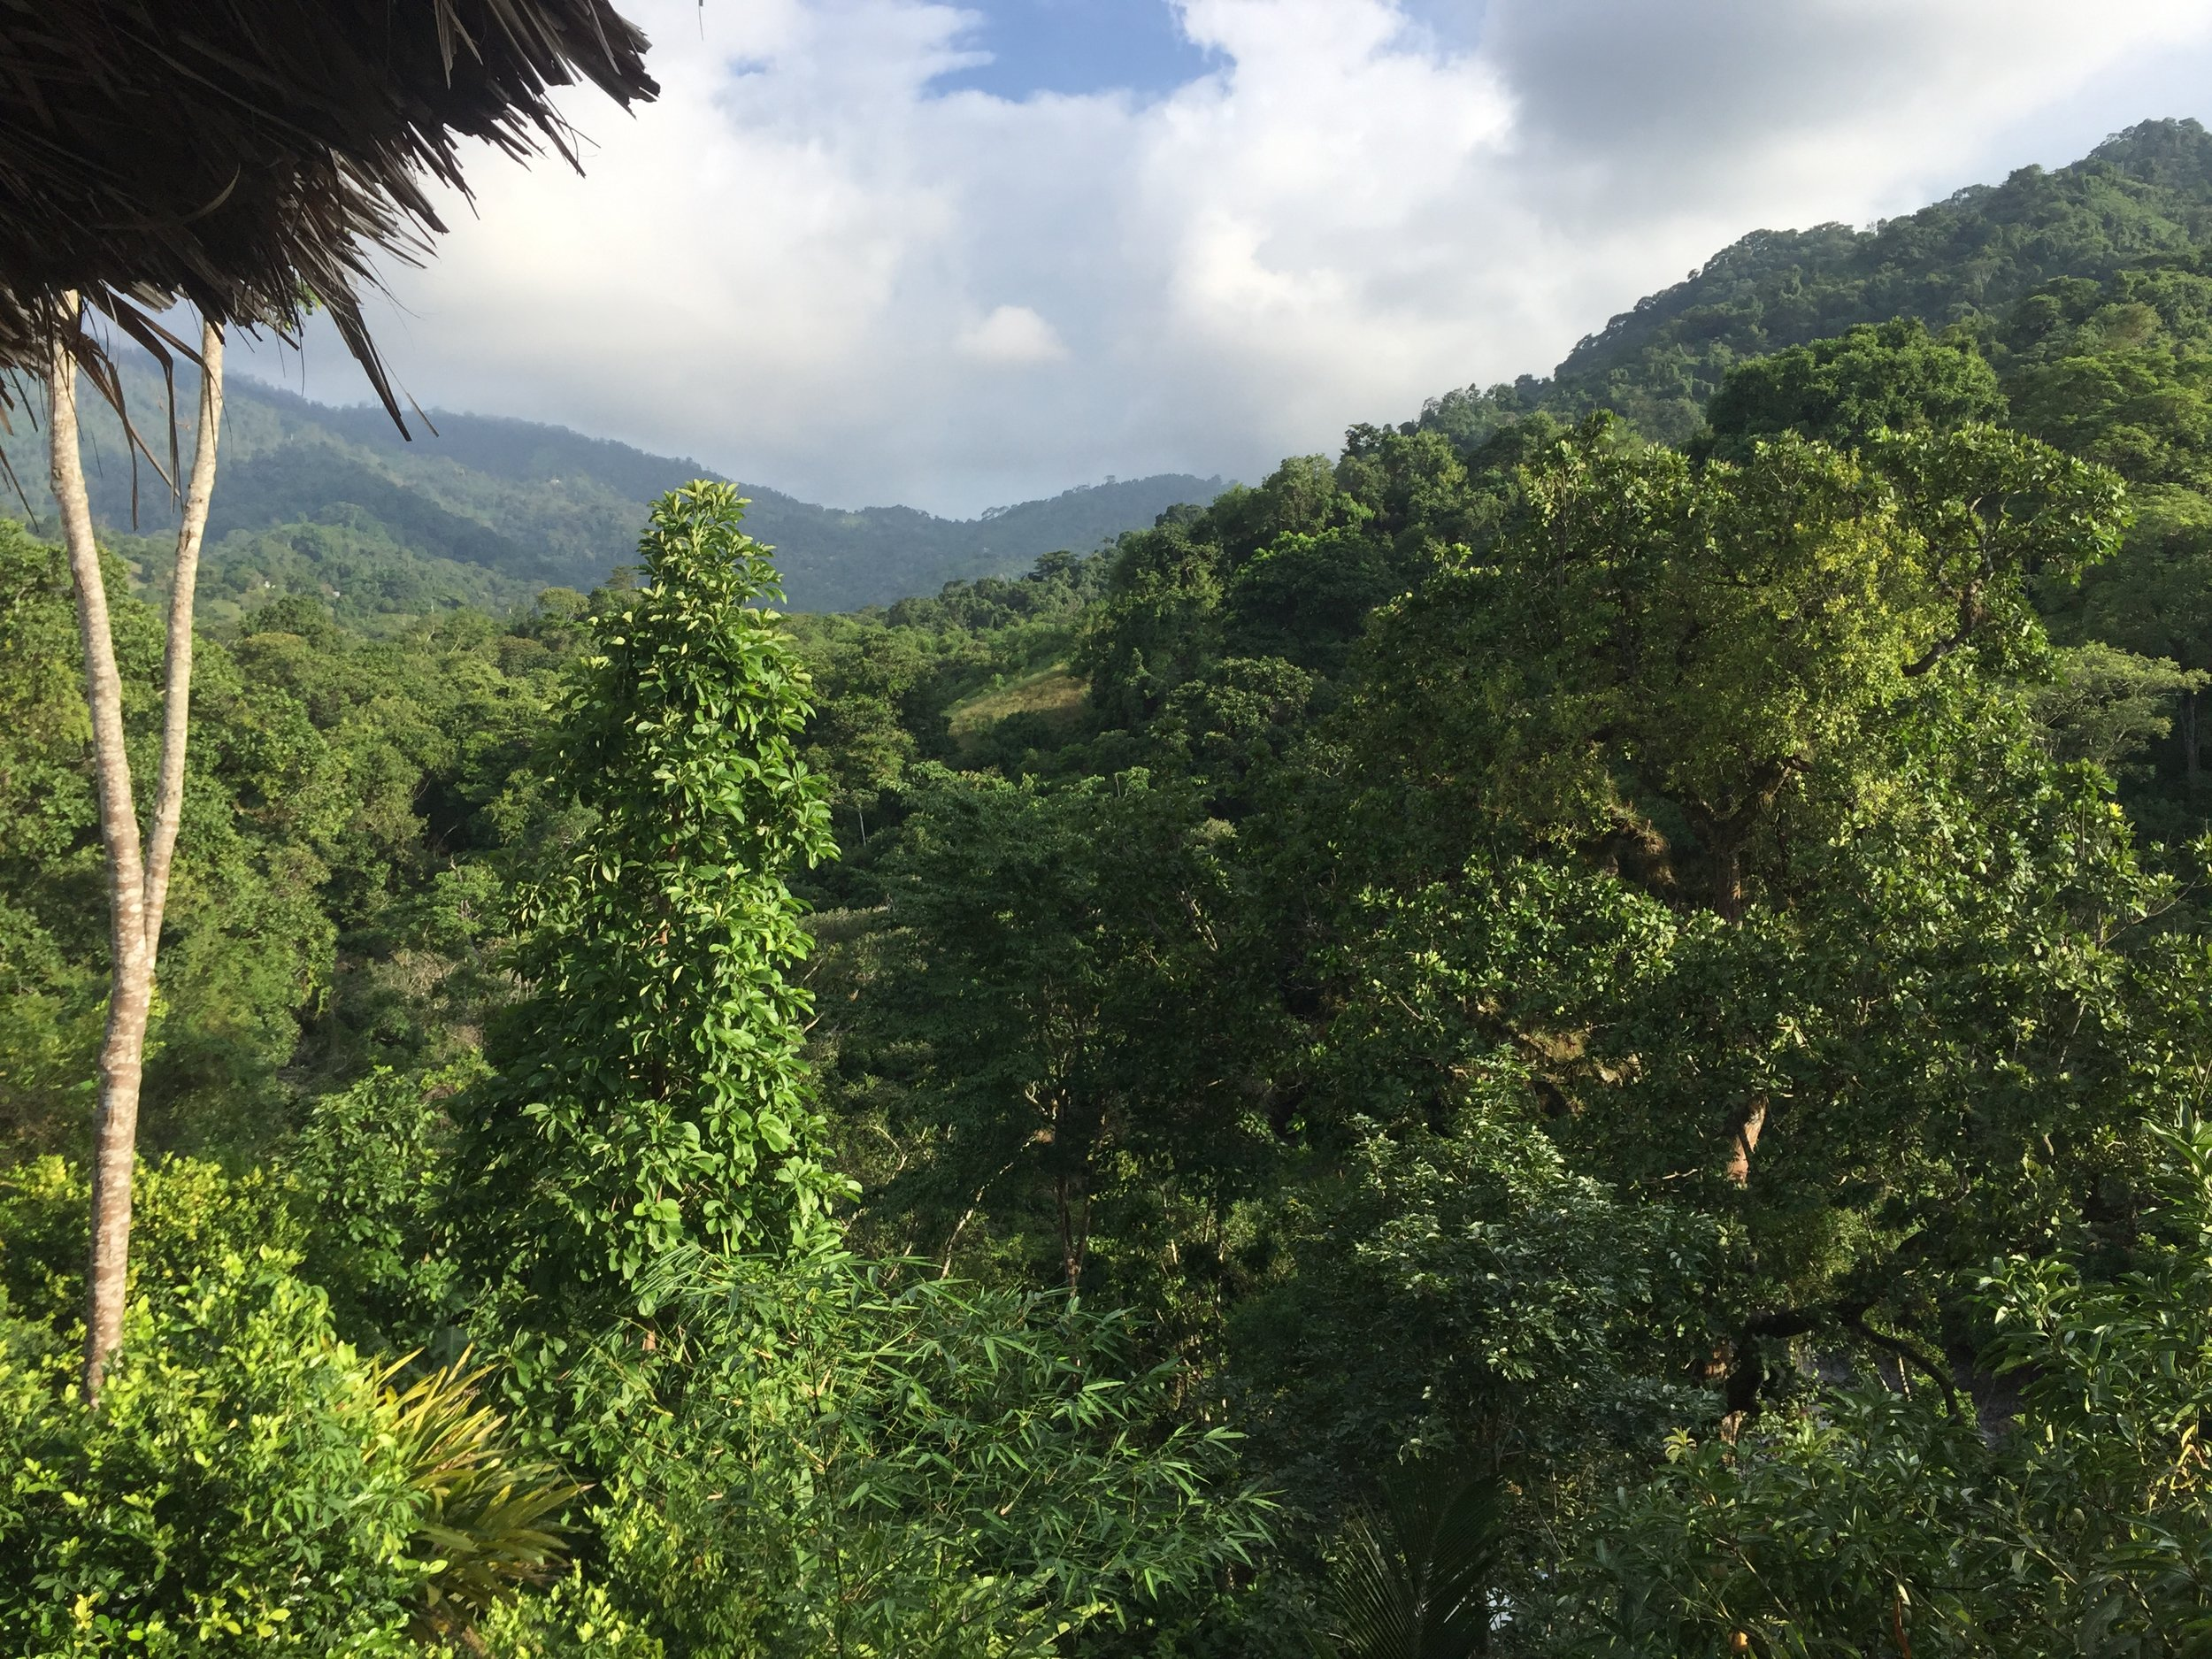 MINCA, COLOMBIA – JULY 26TH, 2017: Sanding on the balcony at Casa Relax hostel, enjoying the view out over the jungles of the Sierra Nevada de Santa Marta.